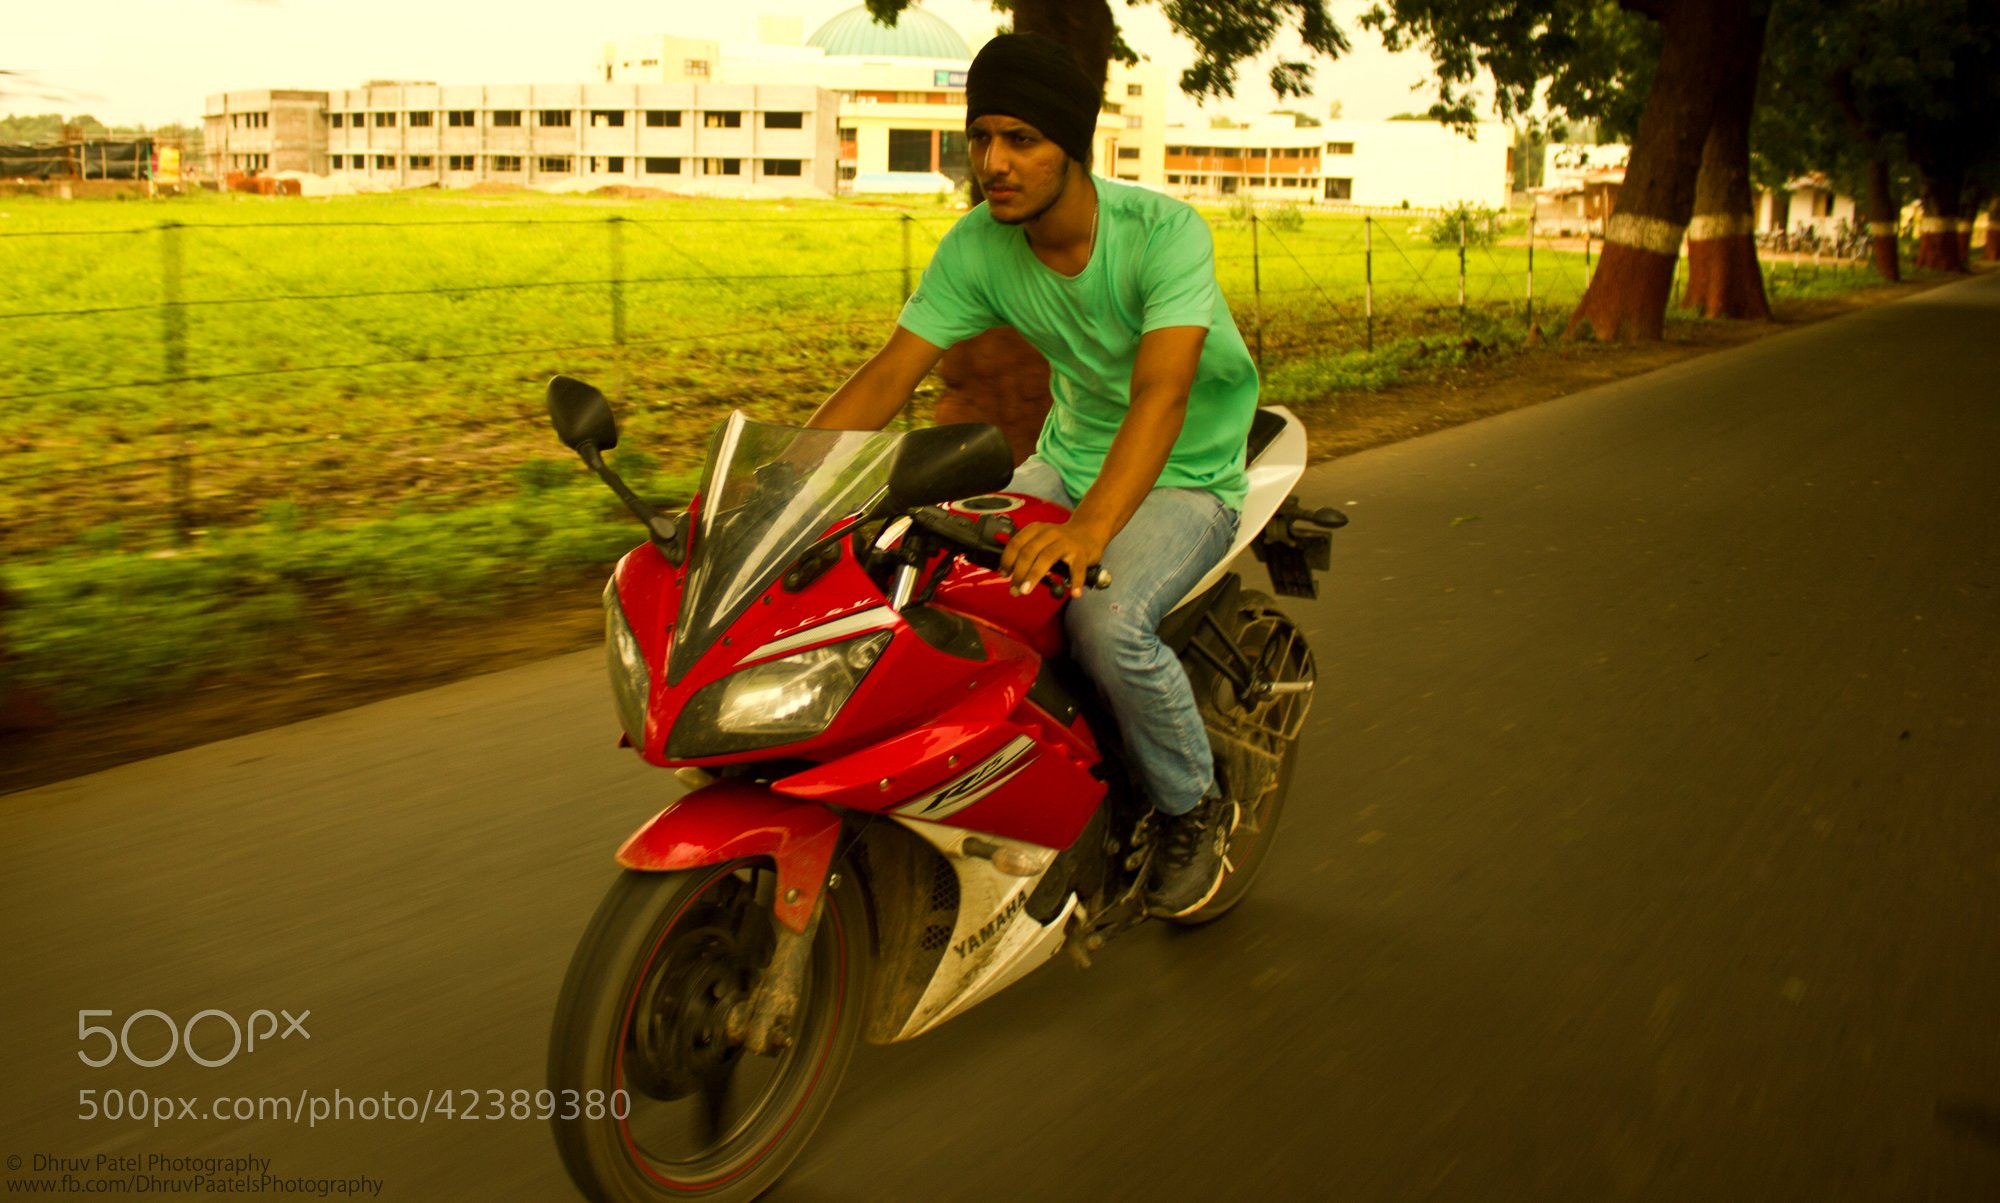 Photograph Experimenting Panning Photography by Dhruv Patel on 500px